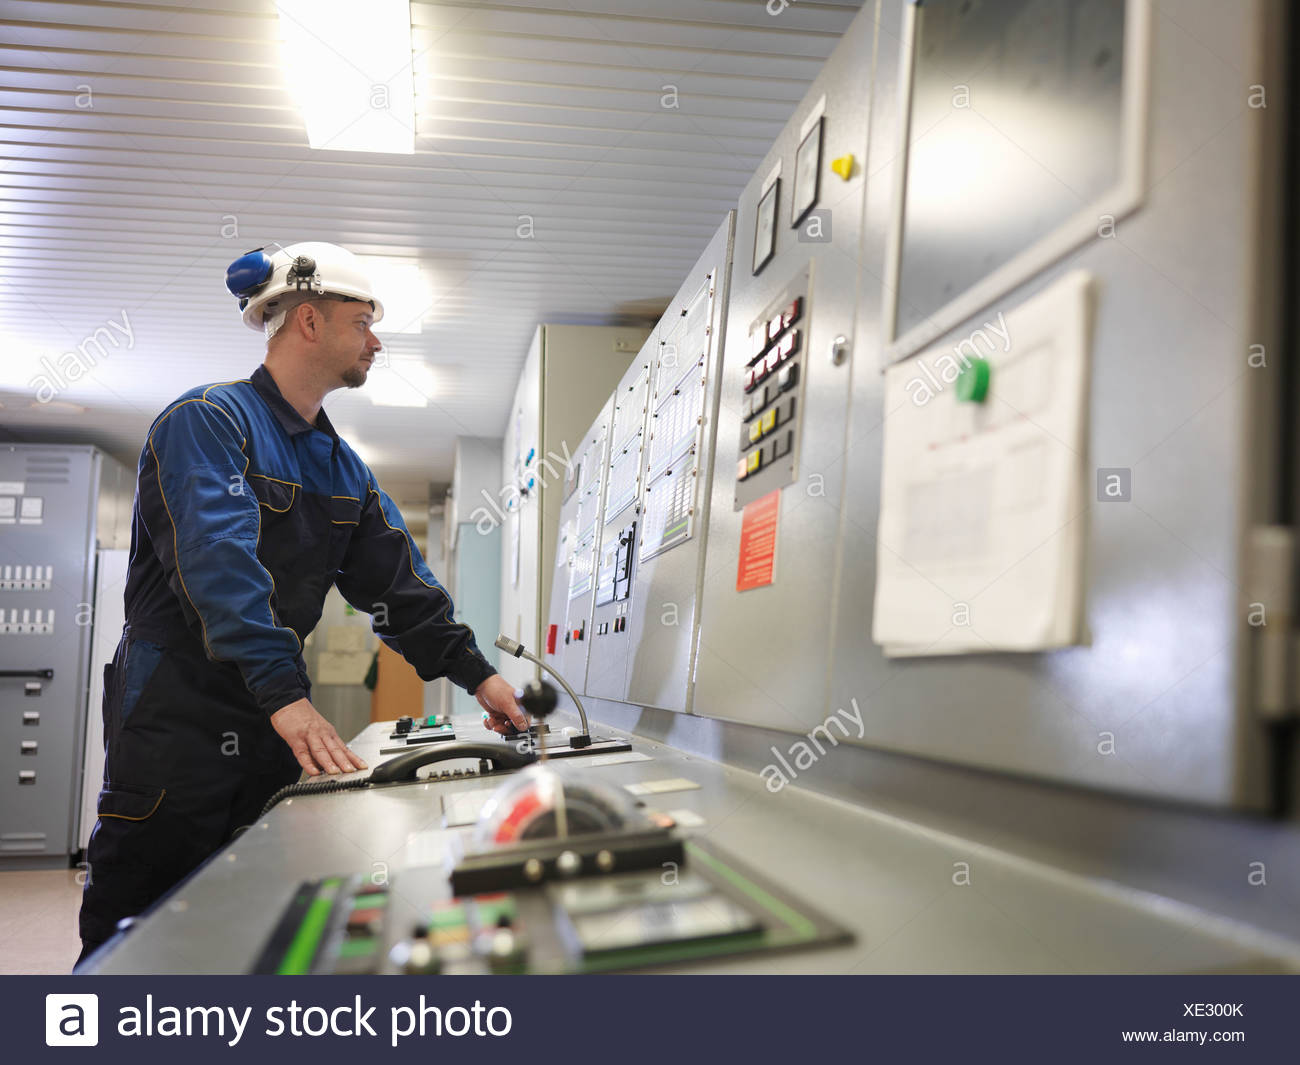 Engineer in Control Room of Ship - Stock Image